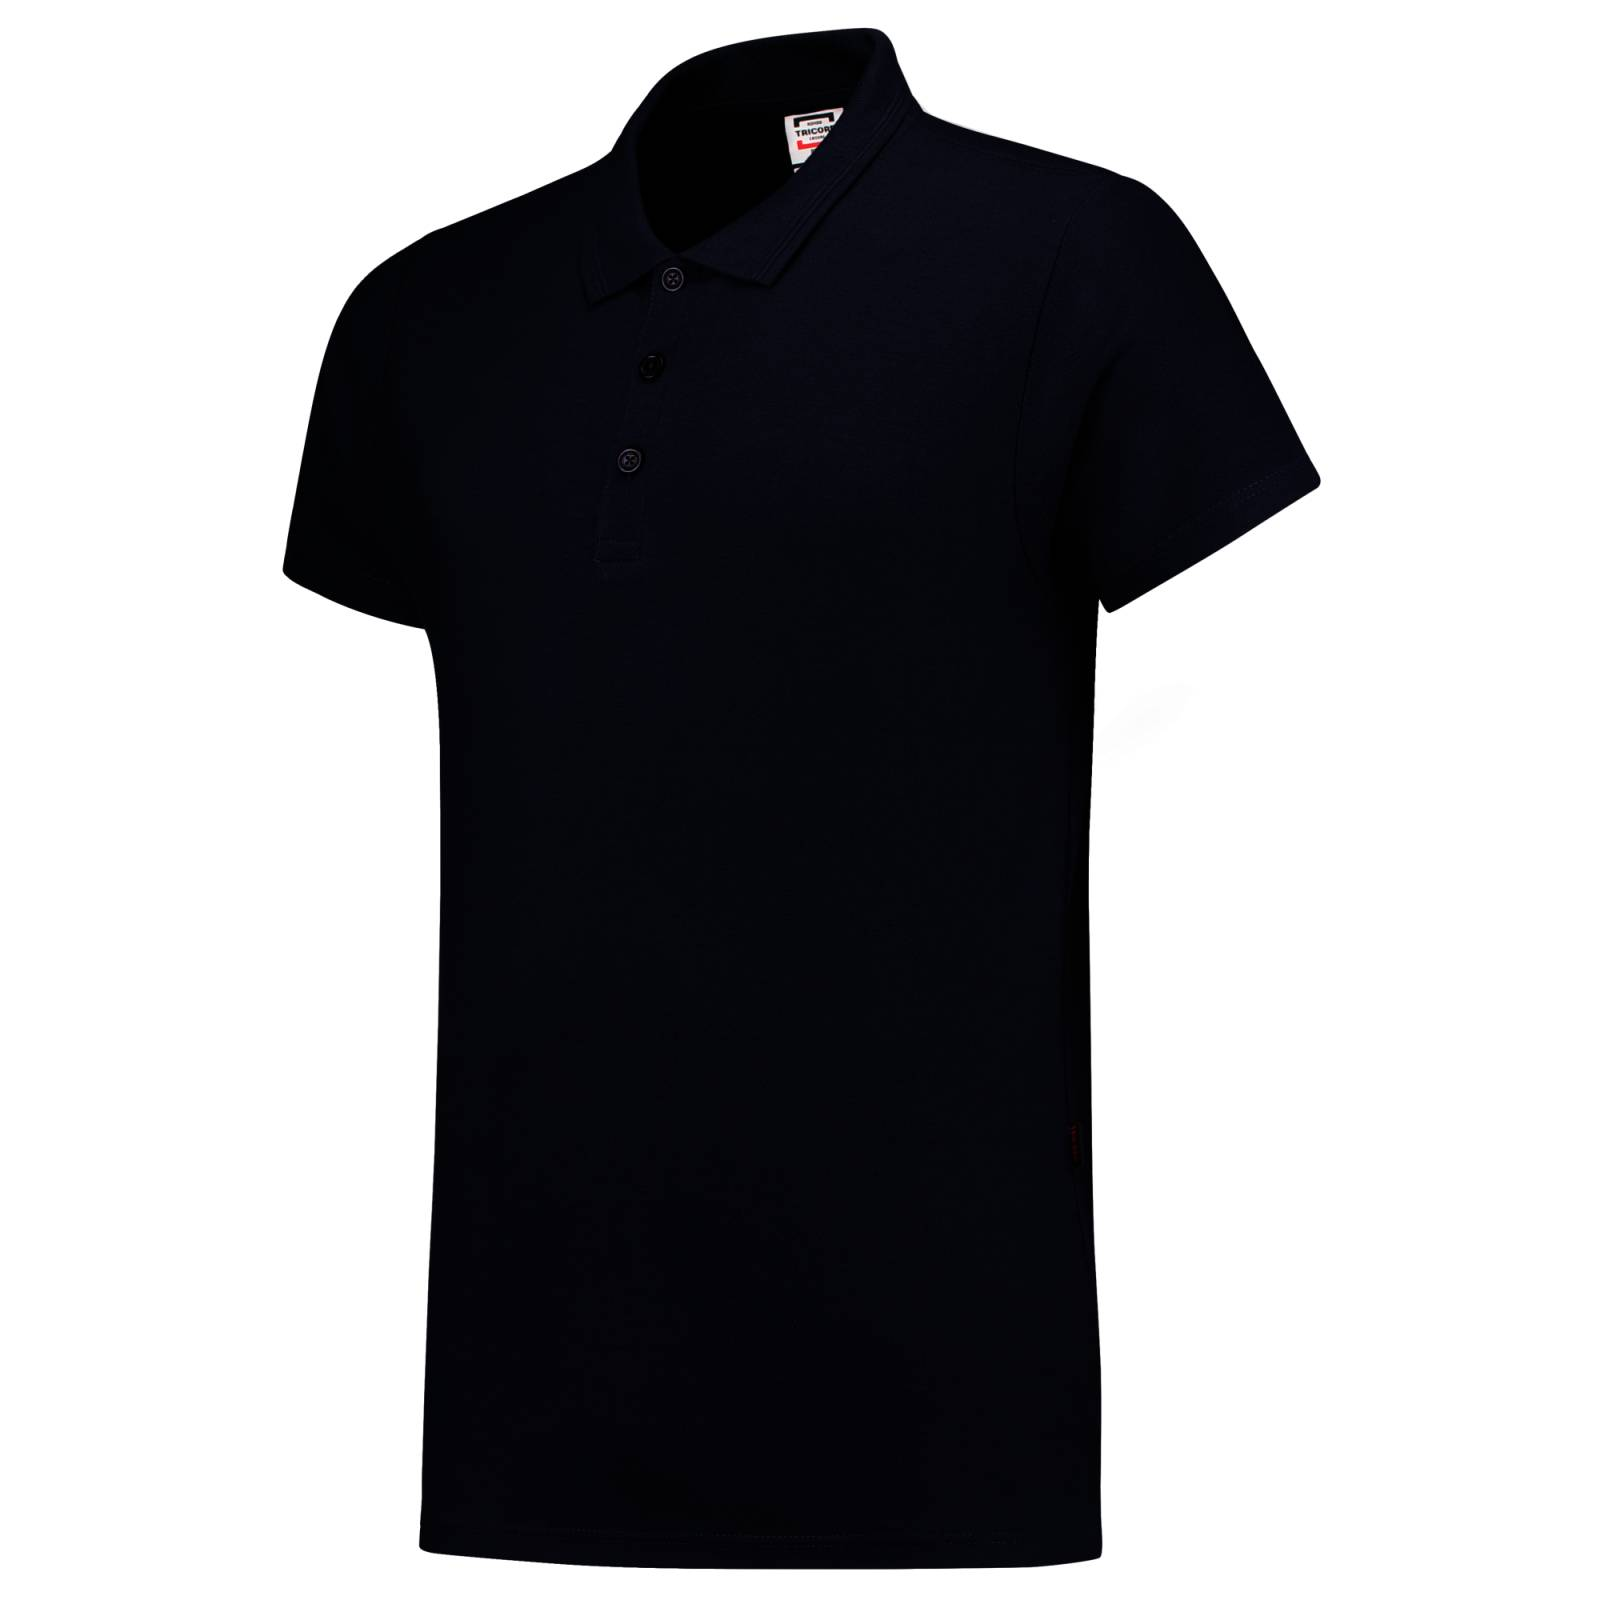 Tricorp Casual Poloshirts 201005-PPF180 inktblauw(Ink)